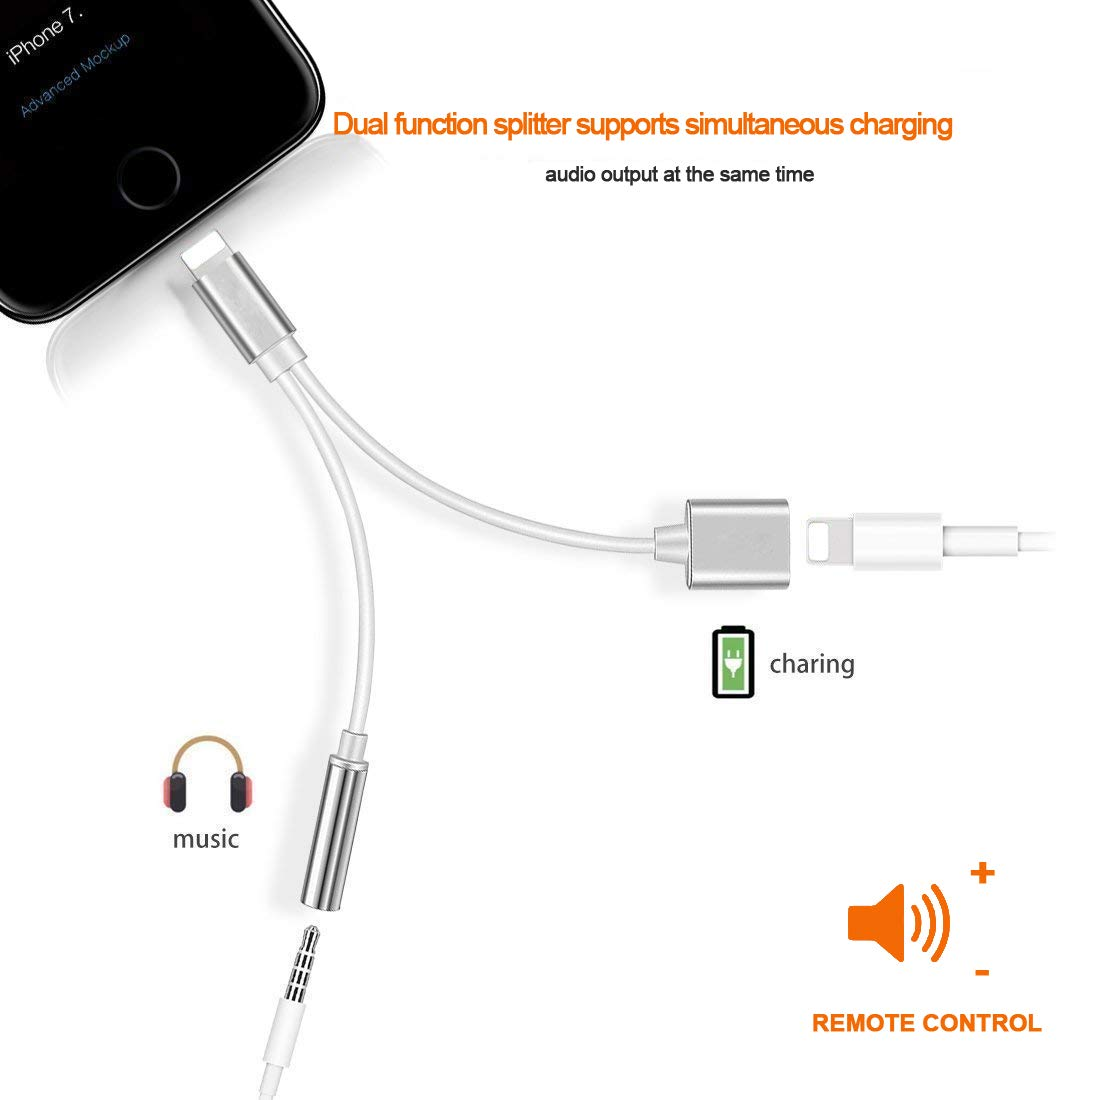 Pritaz for iPhone Adapter Headphones to 3.5 mm Headphone Jack Adapter for iPhone Xs//Xs Max//XR// 8//8 Plus 7//7 Plus.2 in 1 Earphone Splitter Car Charger Adapter Cables /& Audio Support All iOS Systems